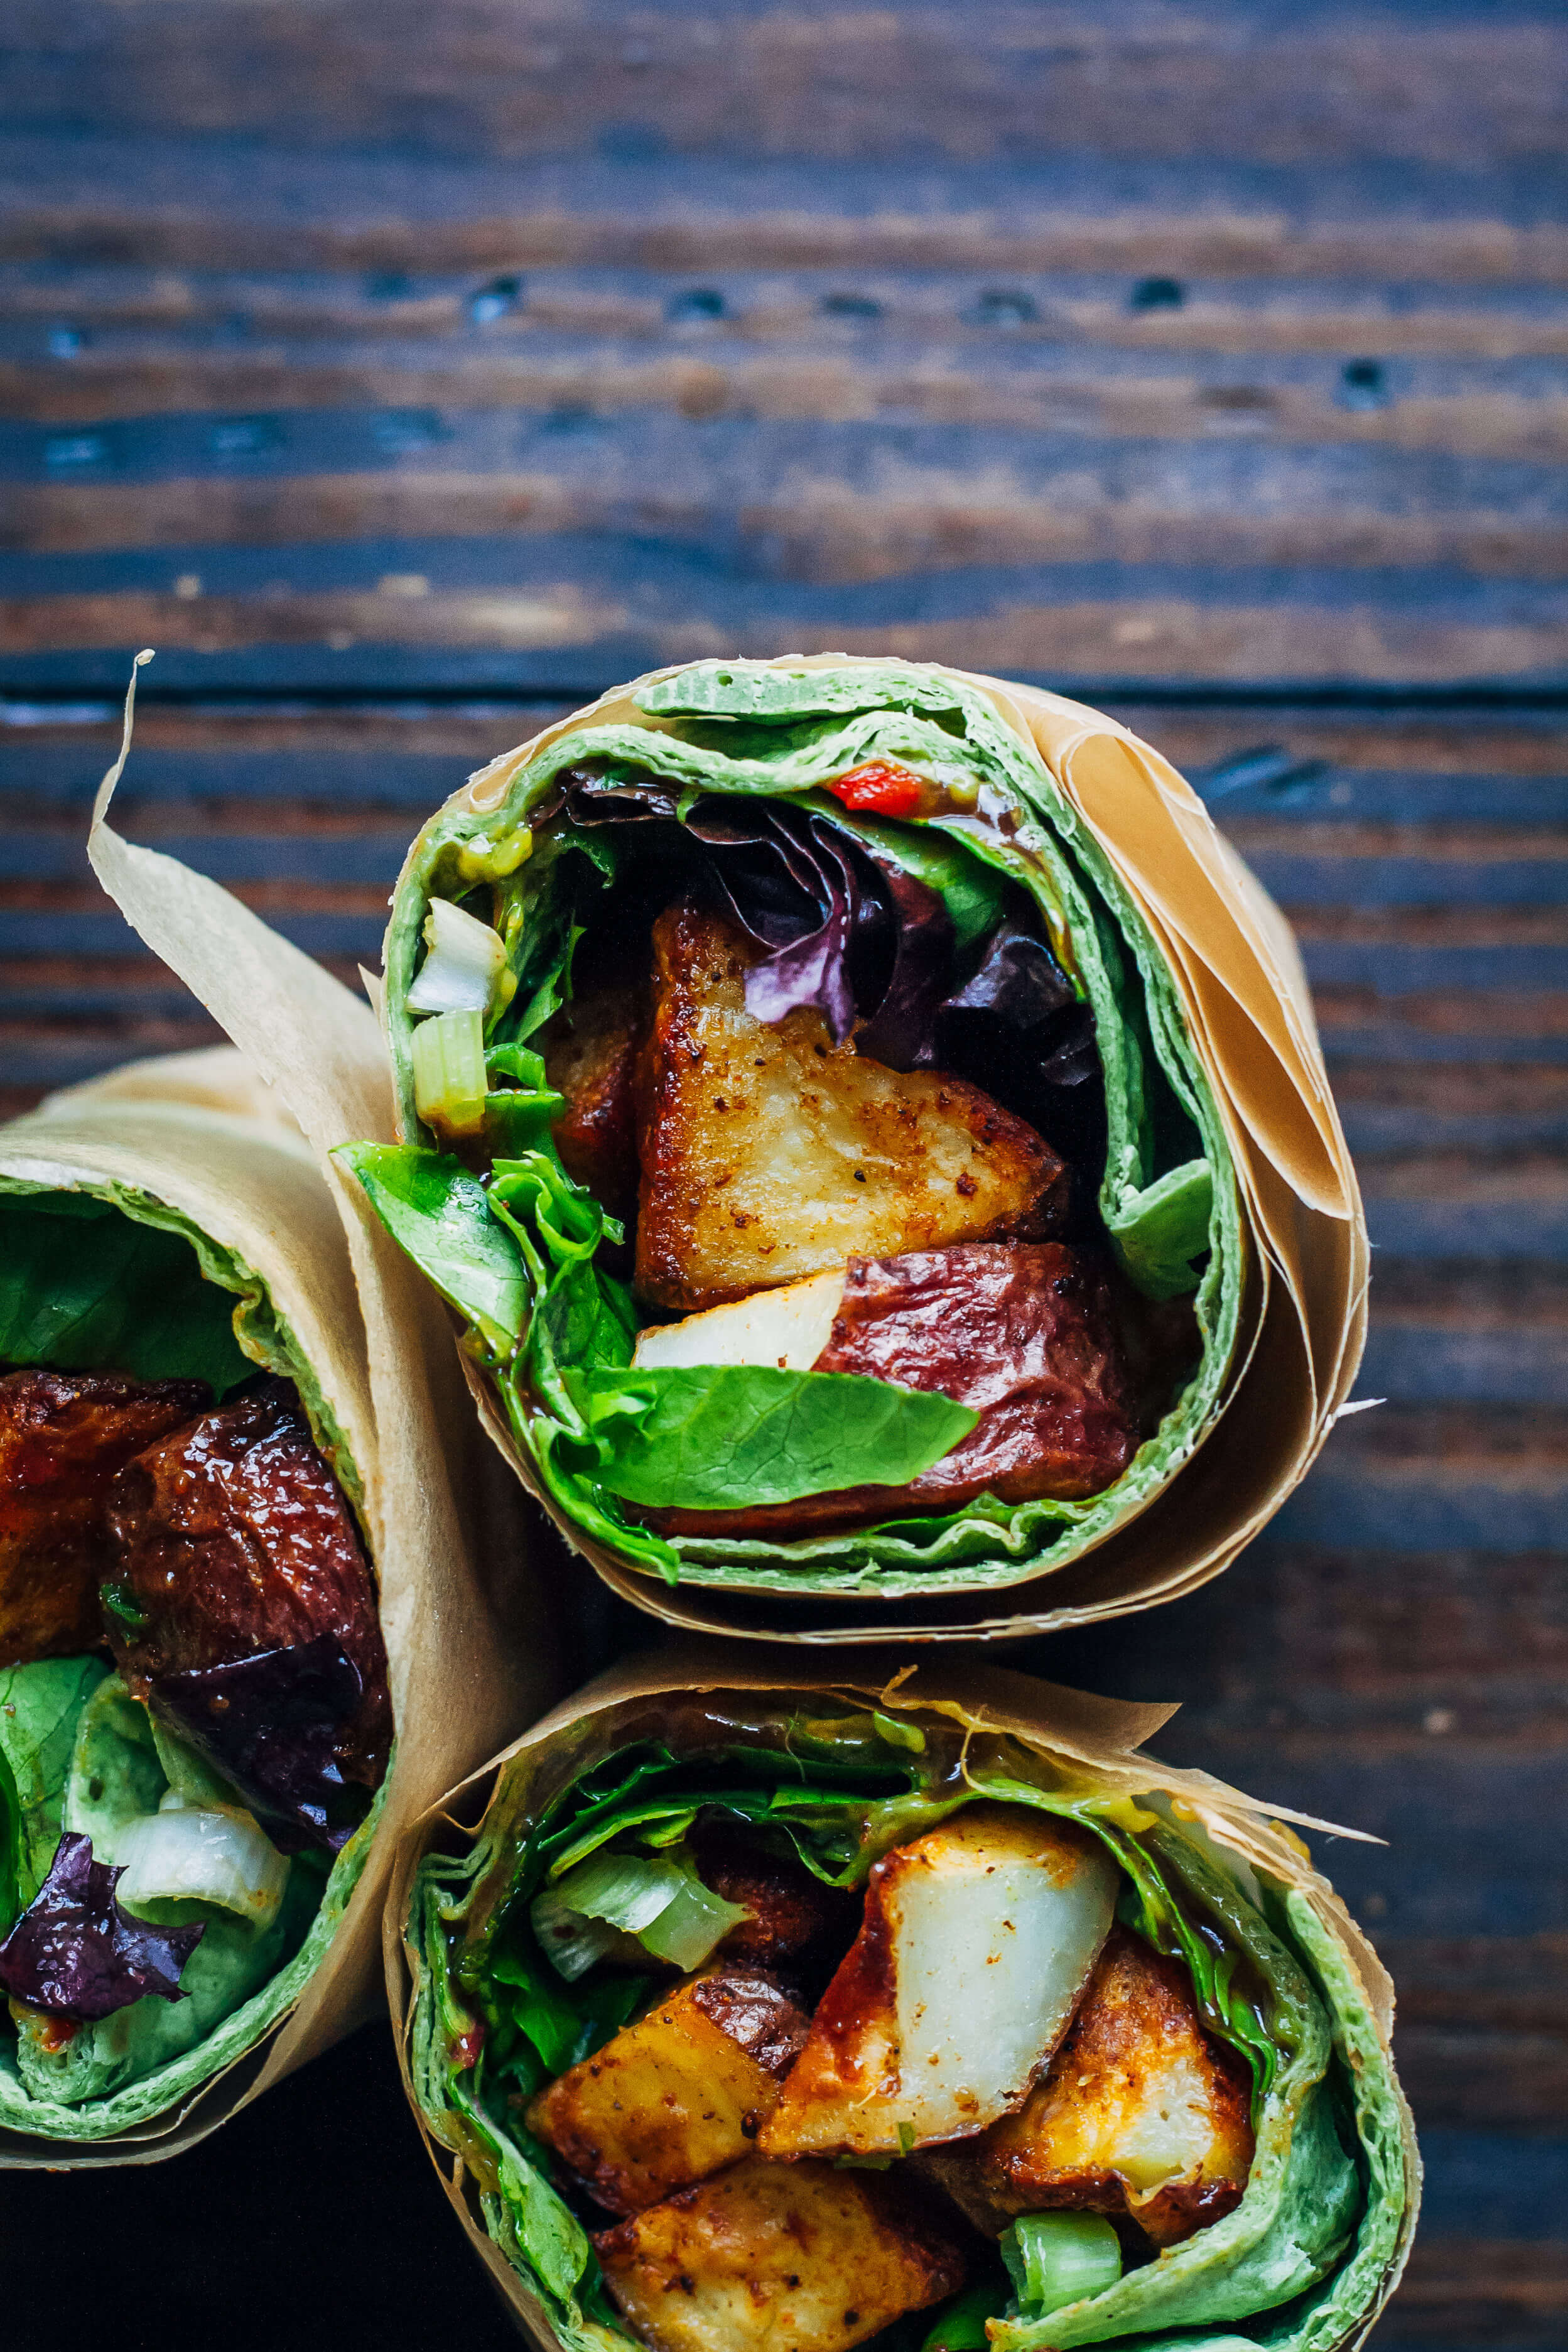 Wraps Vegan 19 Healthy Vegan Wraps For Work Lunch Easy Ideas The